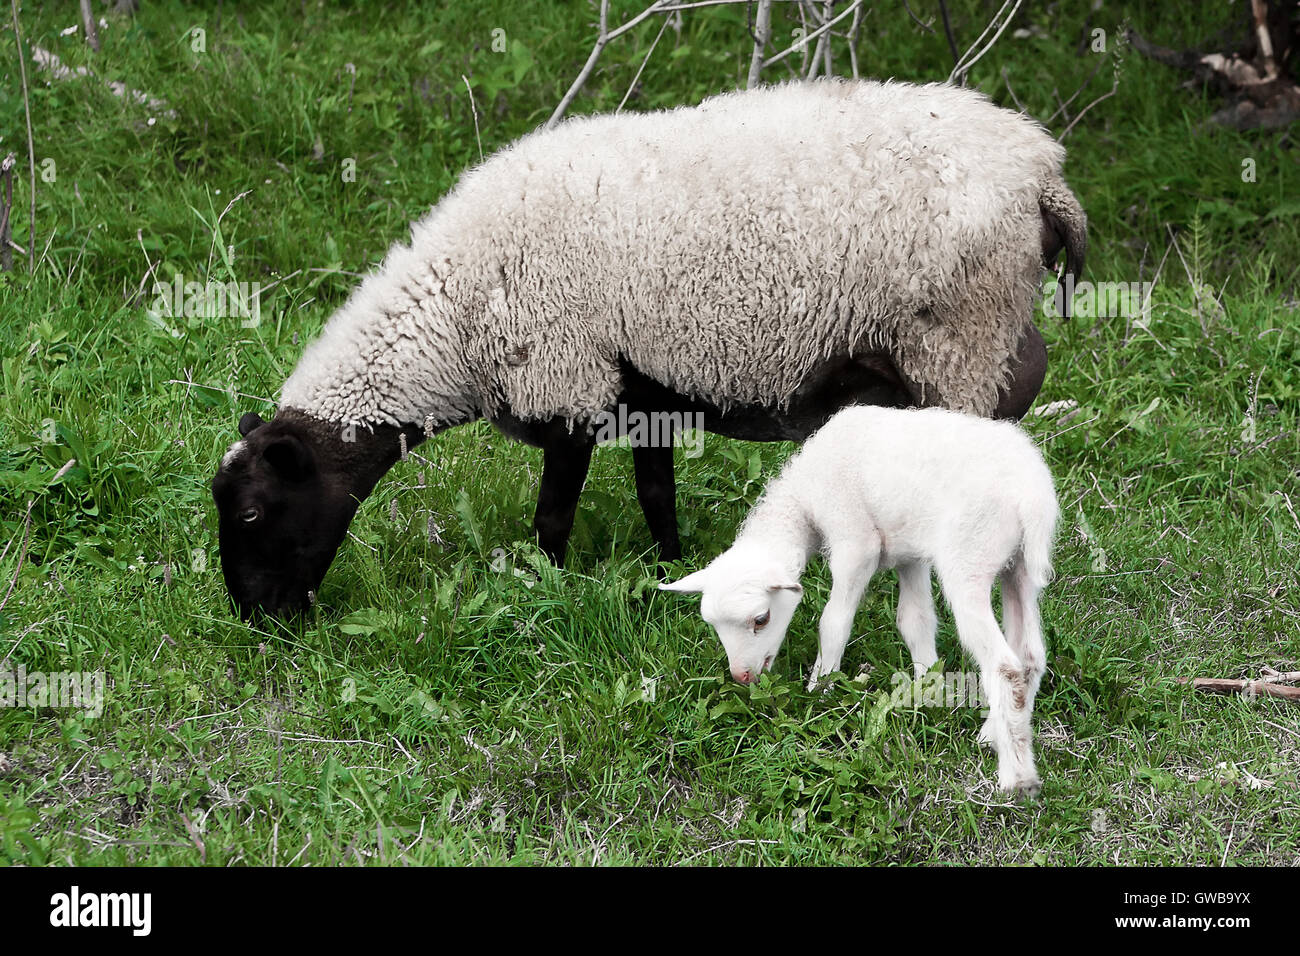 A sheep (ewe) and white lamb (yeanling, eanling, cade) pasturing on a meadow with green grass as a background. - Stock Image